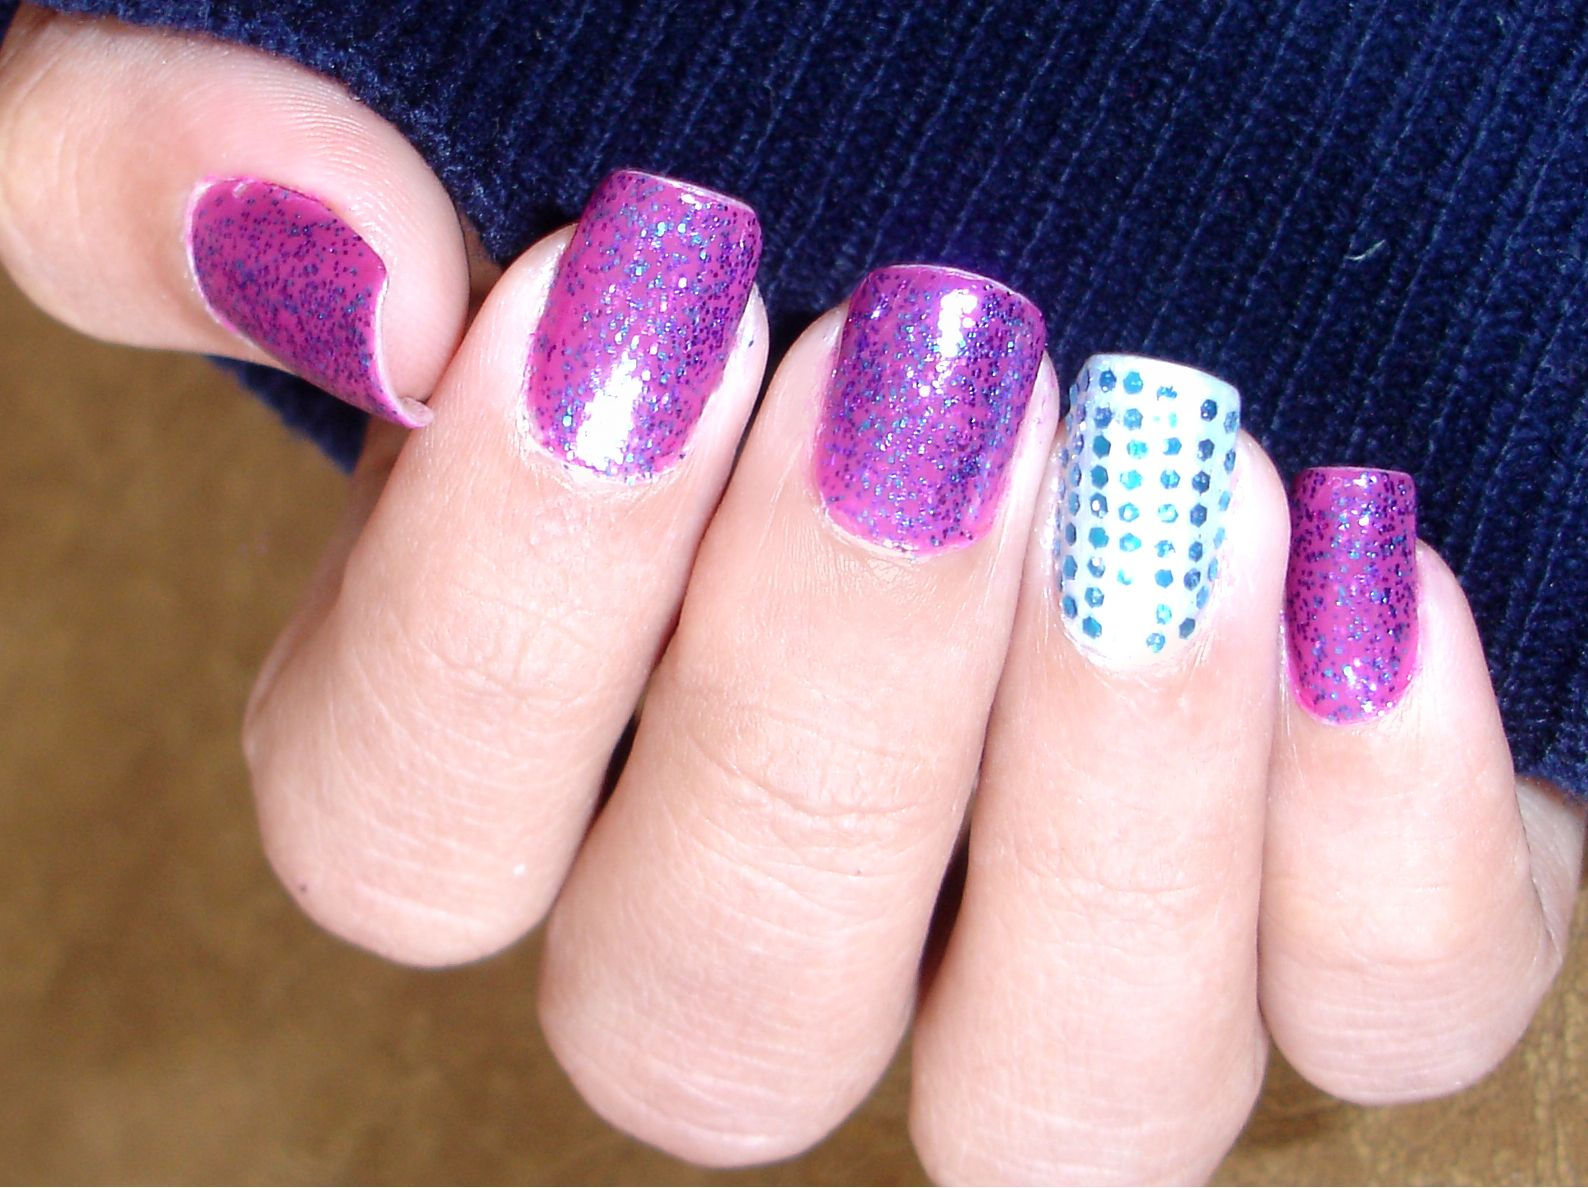 Shing ♥: NOTW: Amethyst Nails